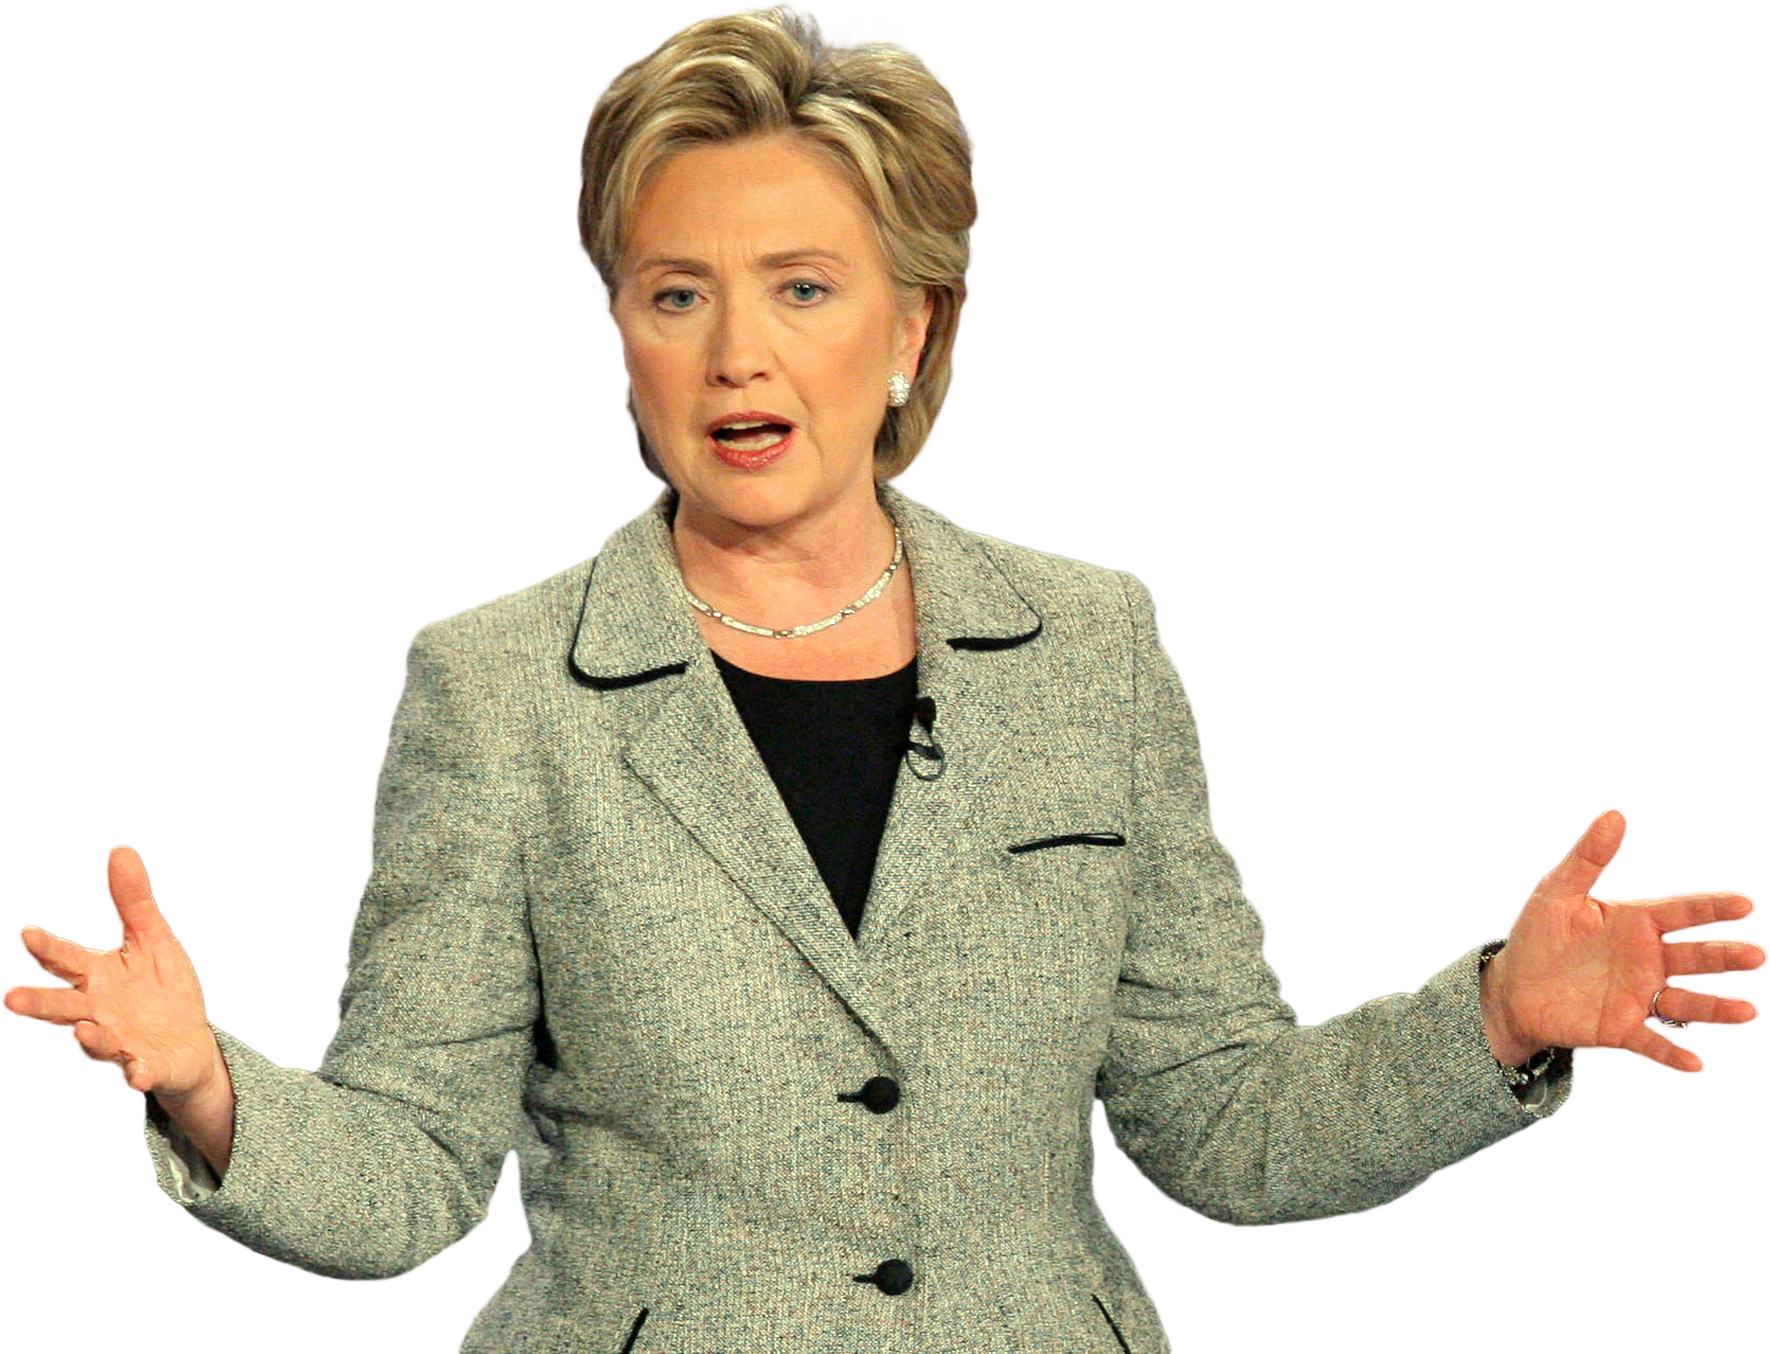 Hillary png images free. Politician clipart clinton